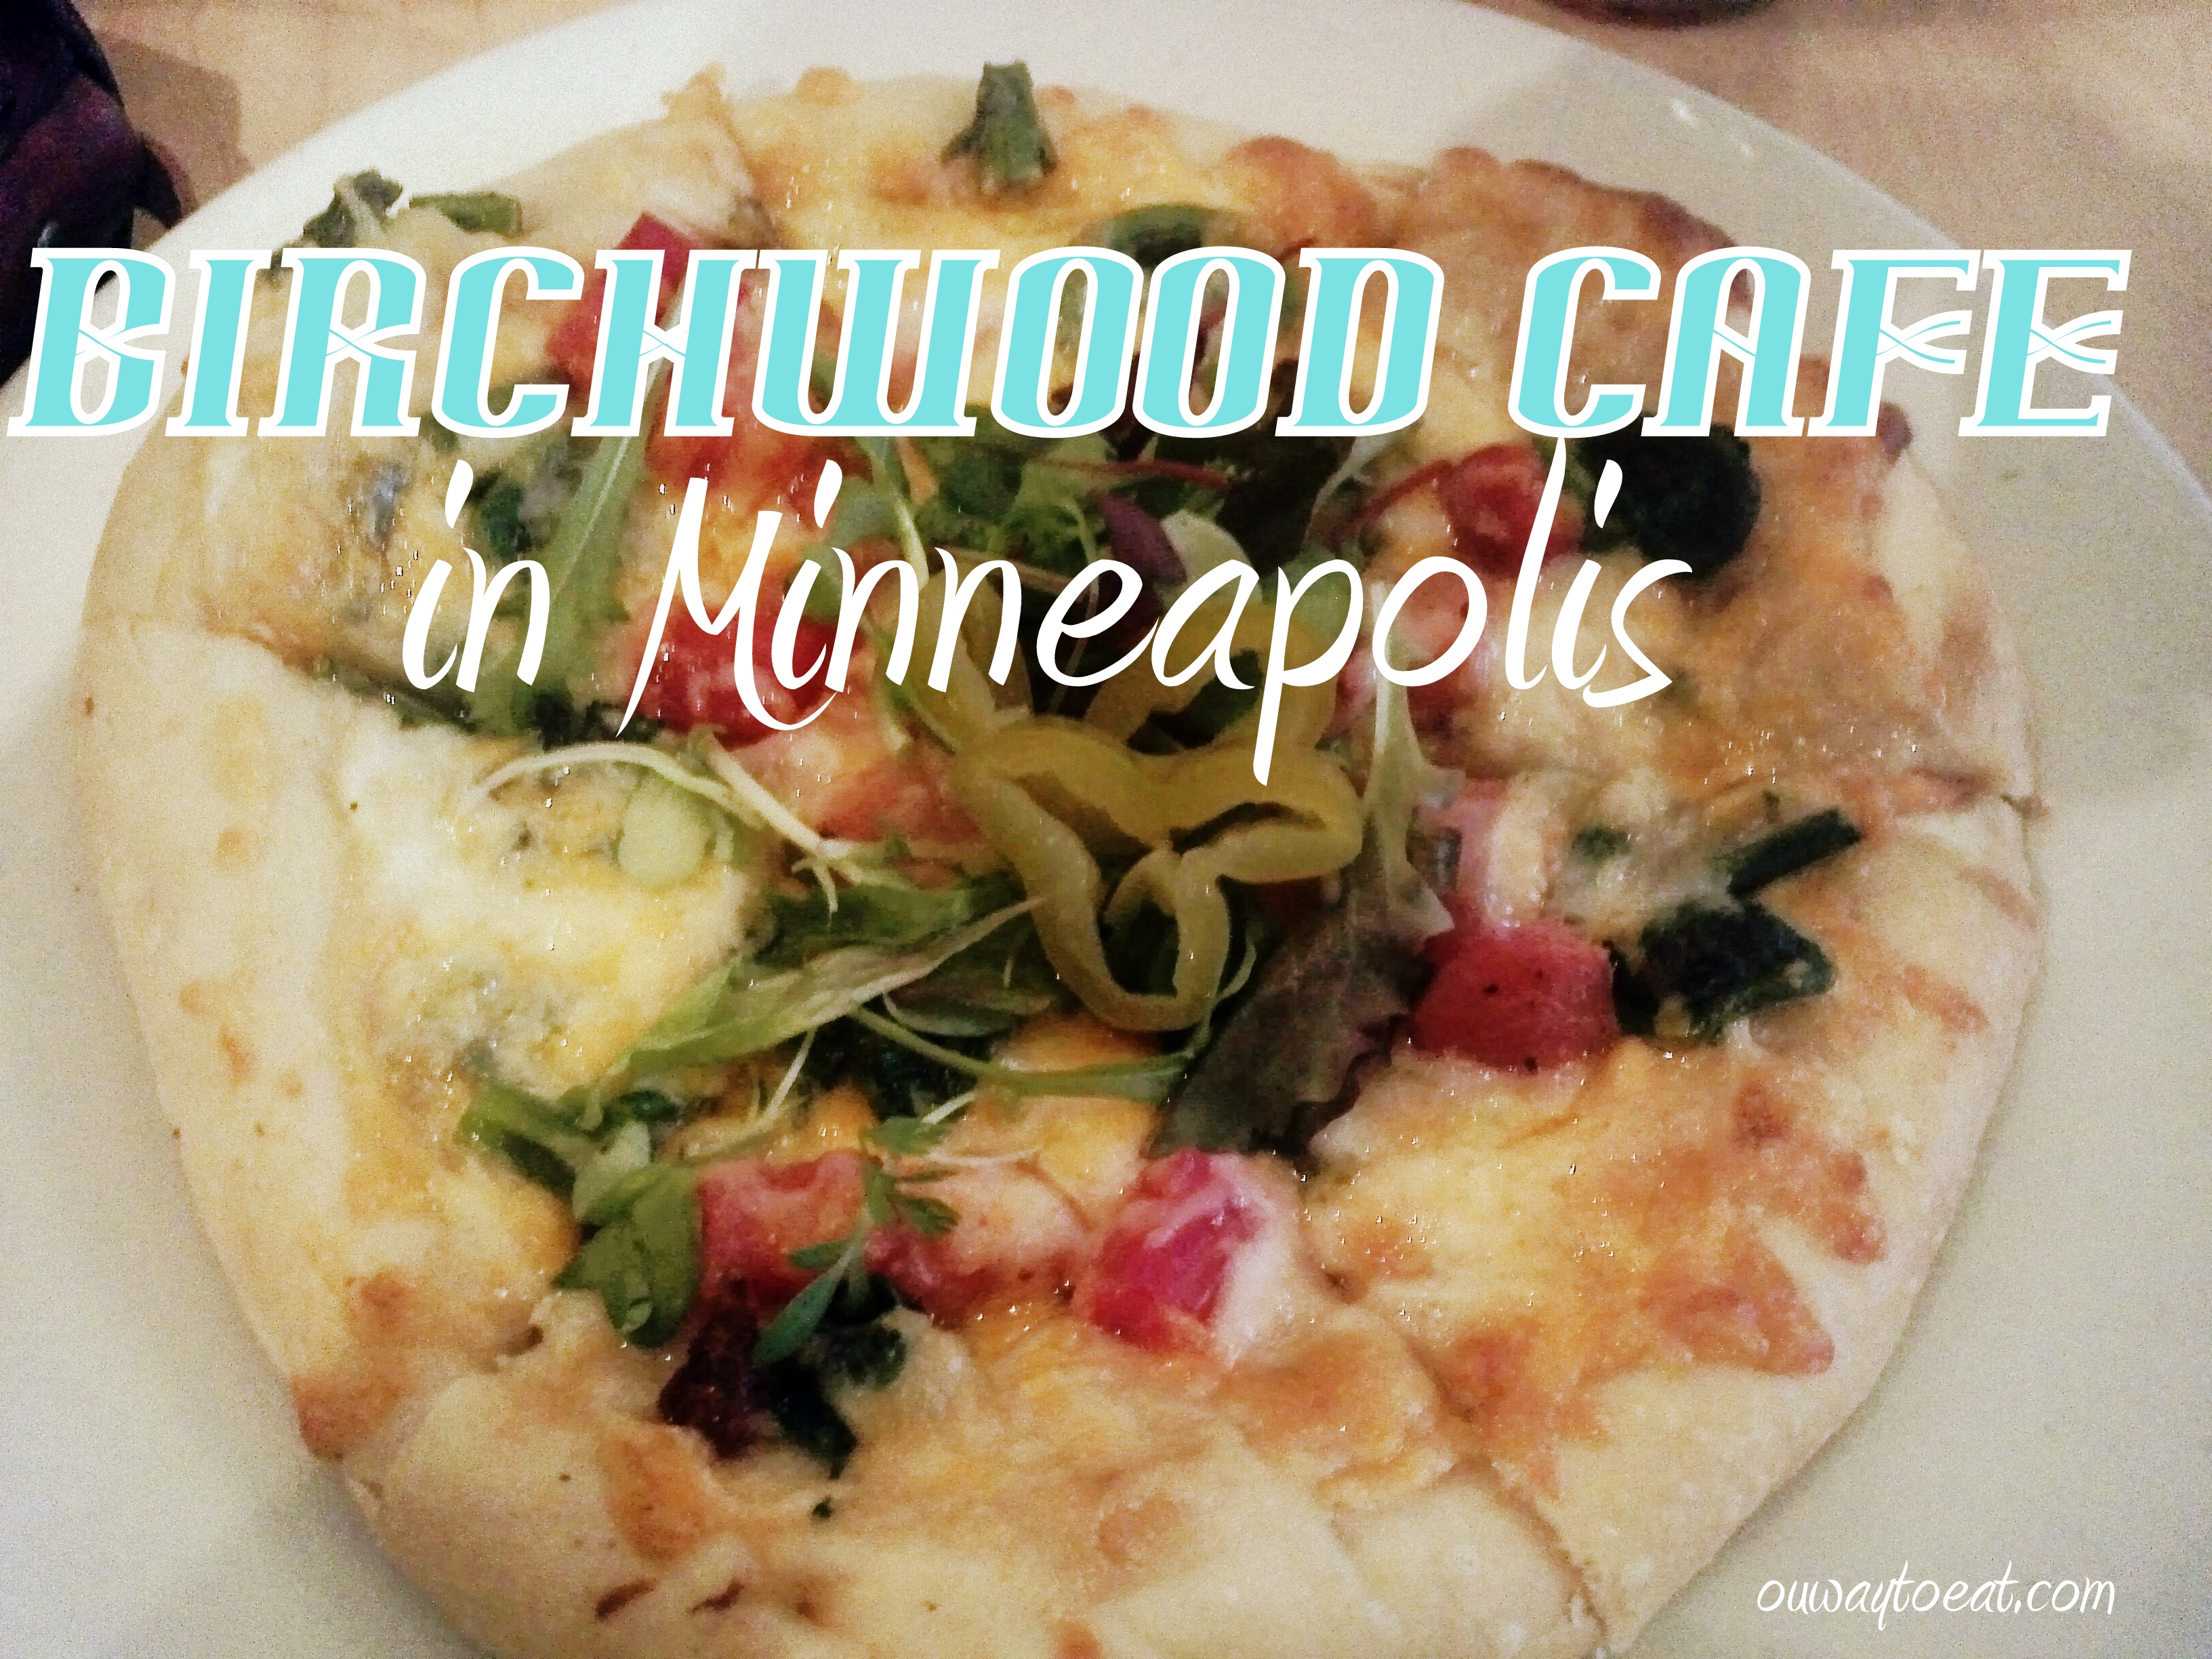 Birchwood Cafe Mn Menu